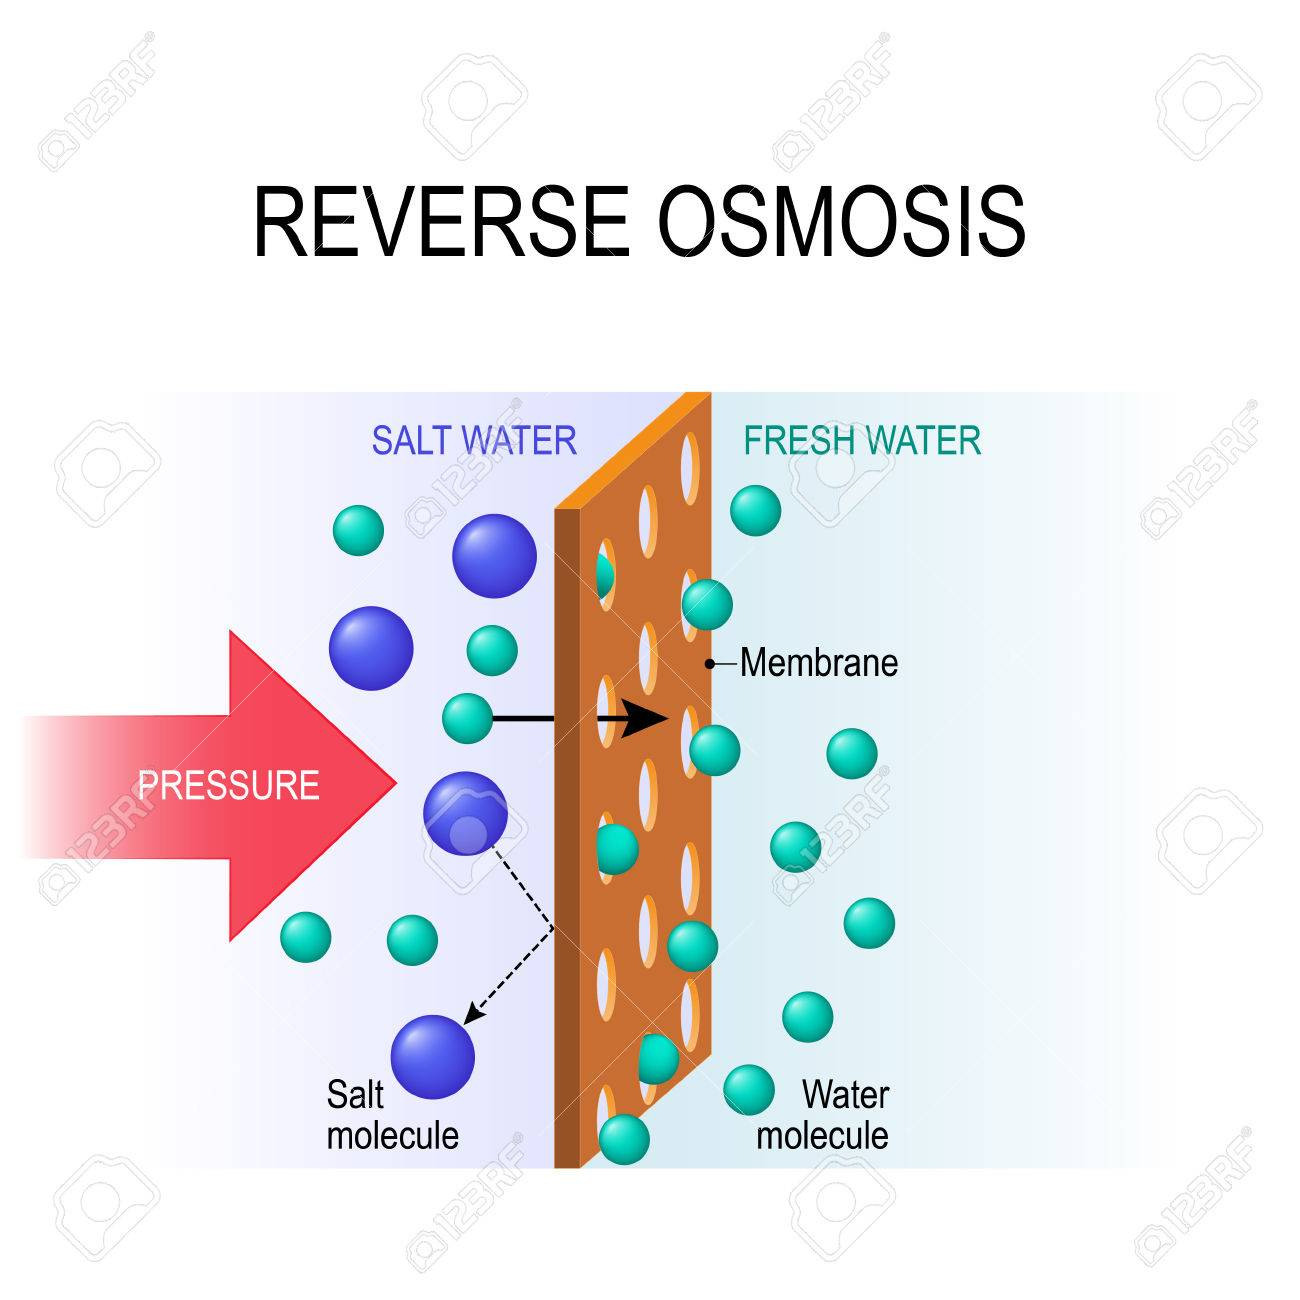 reverse osmosis. Desalination. The pressure water molecules seep through the semi-permeable membrane. - 79917598